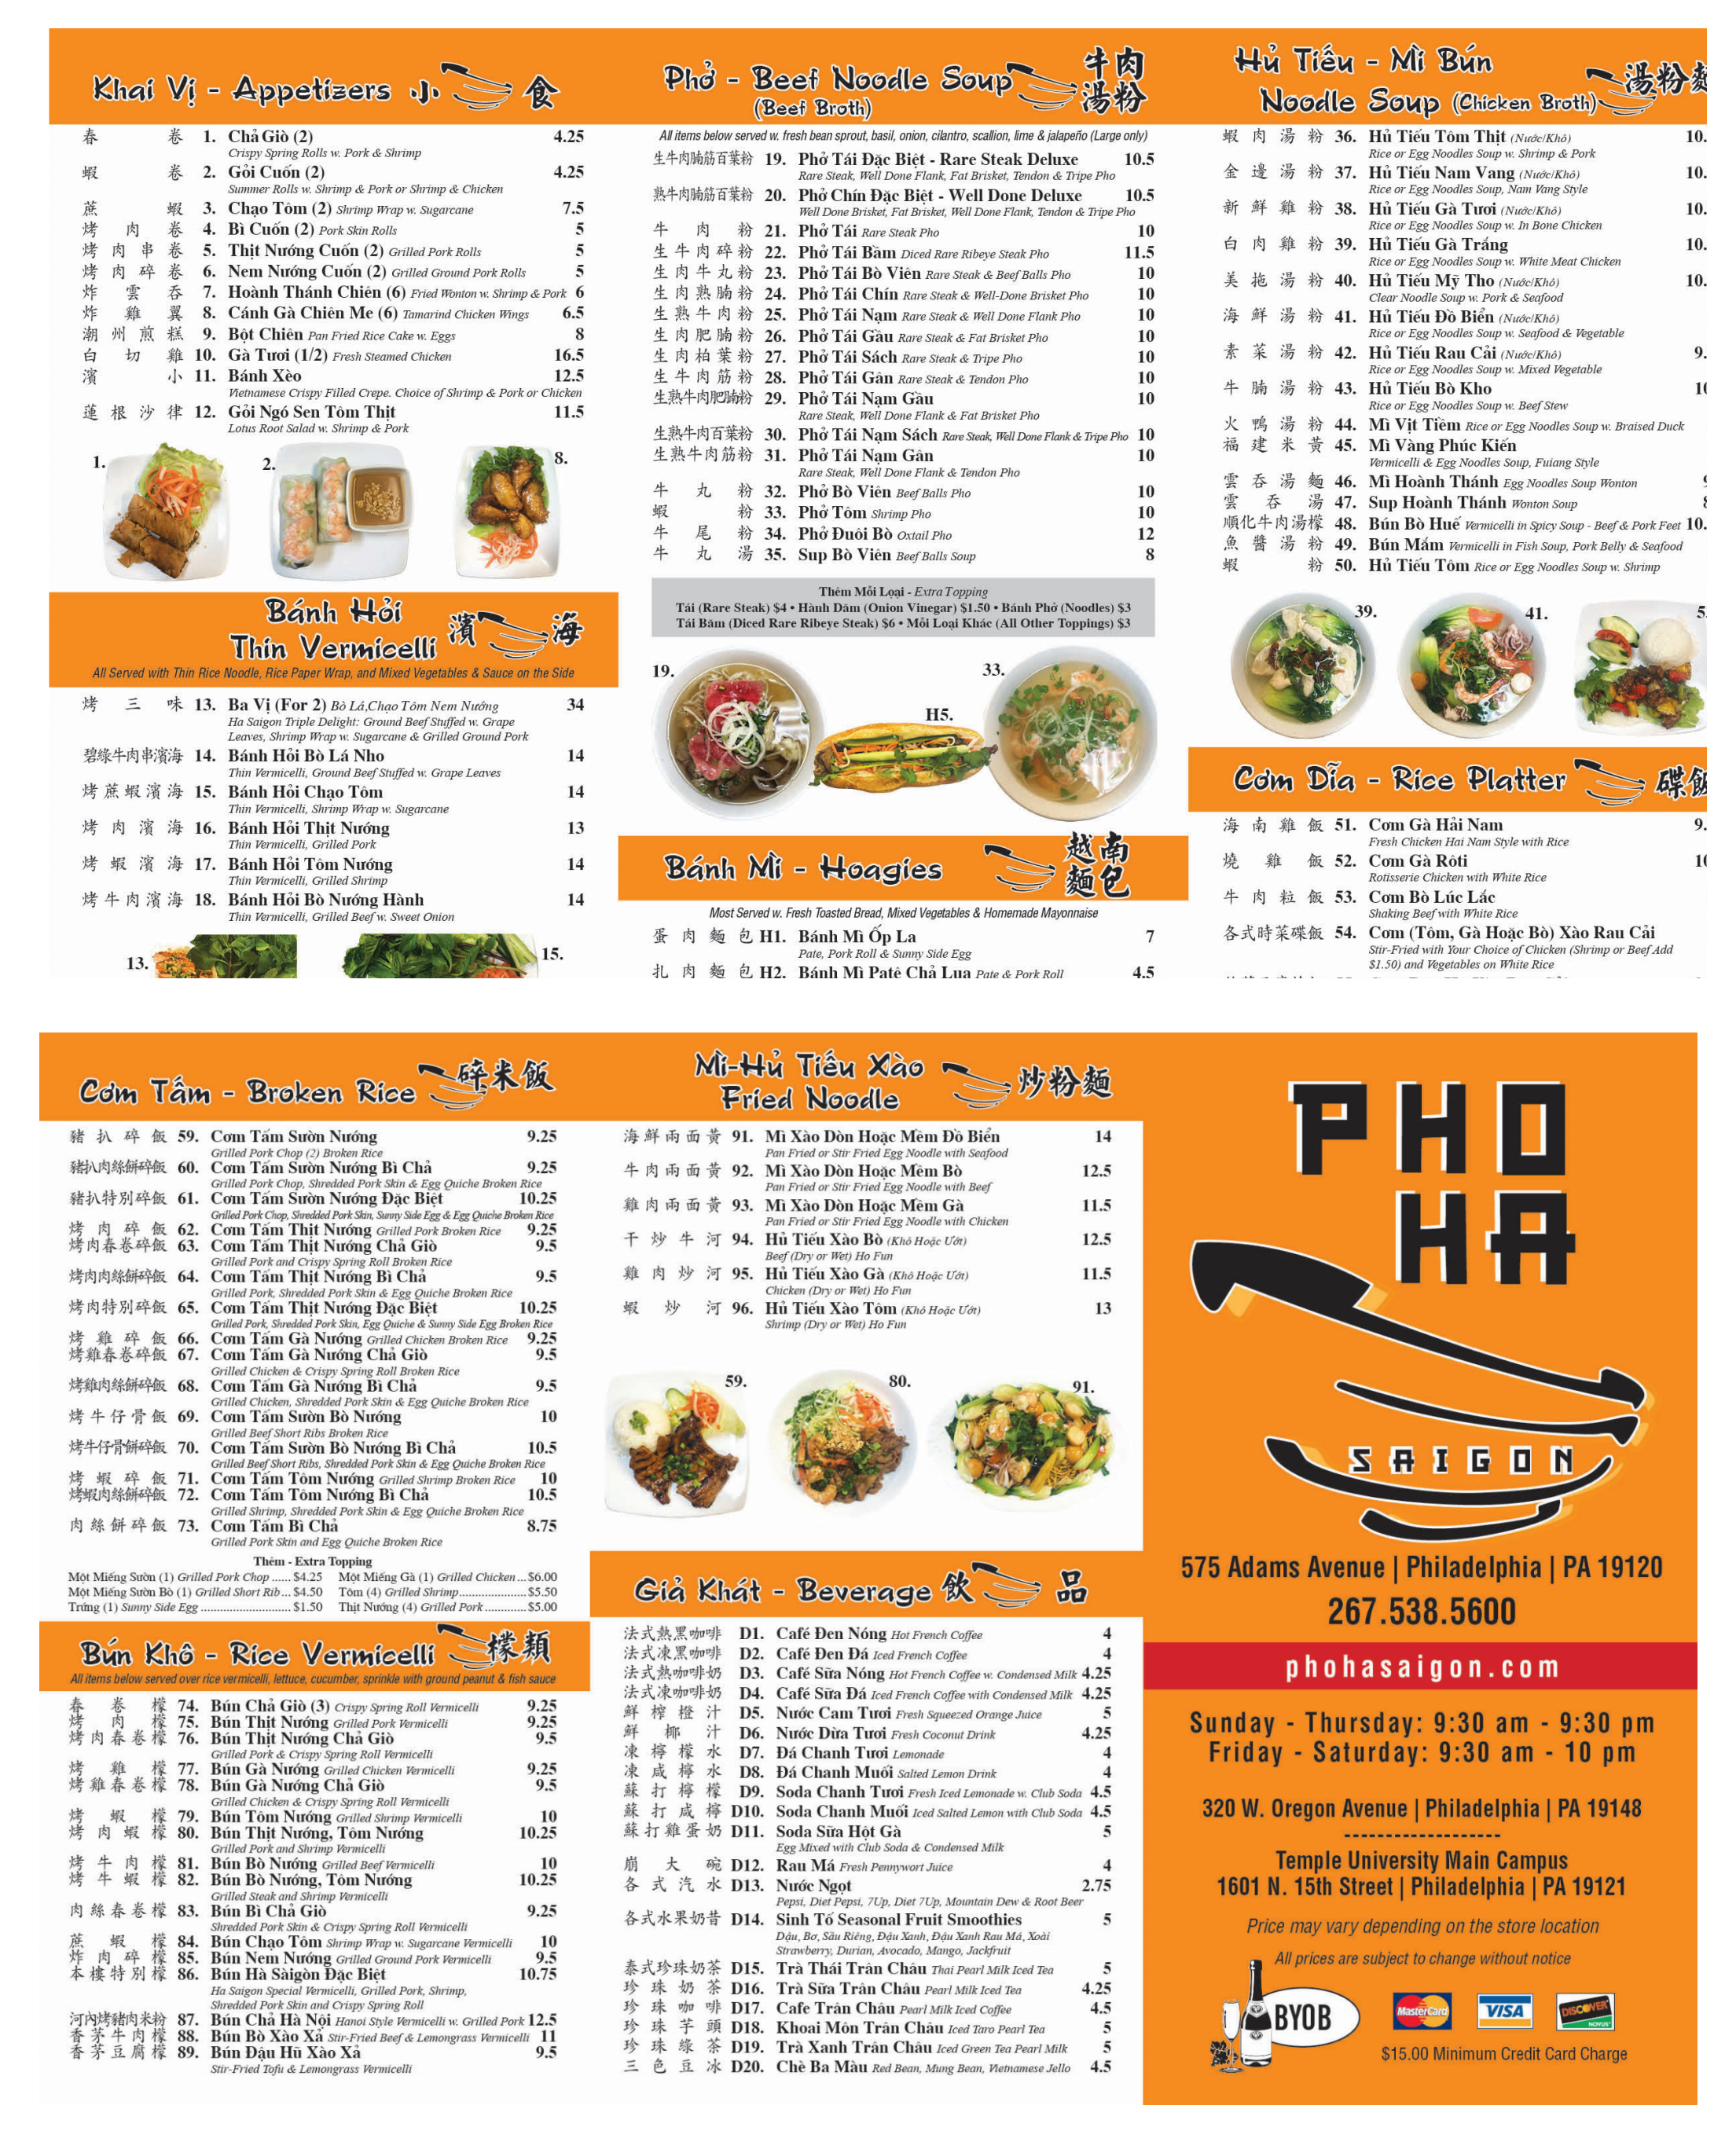 Pho Ha Saigon